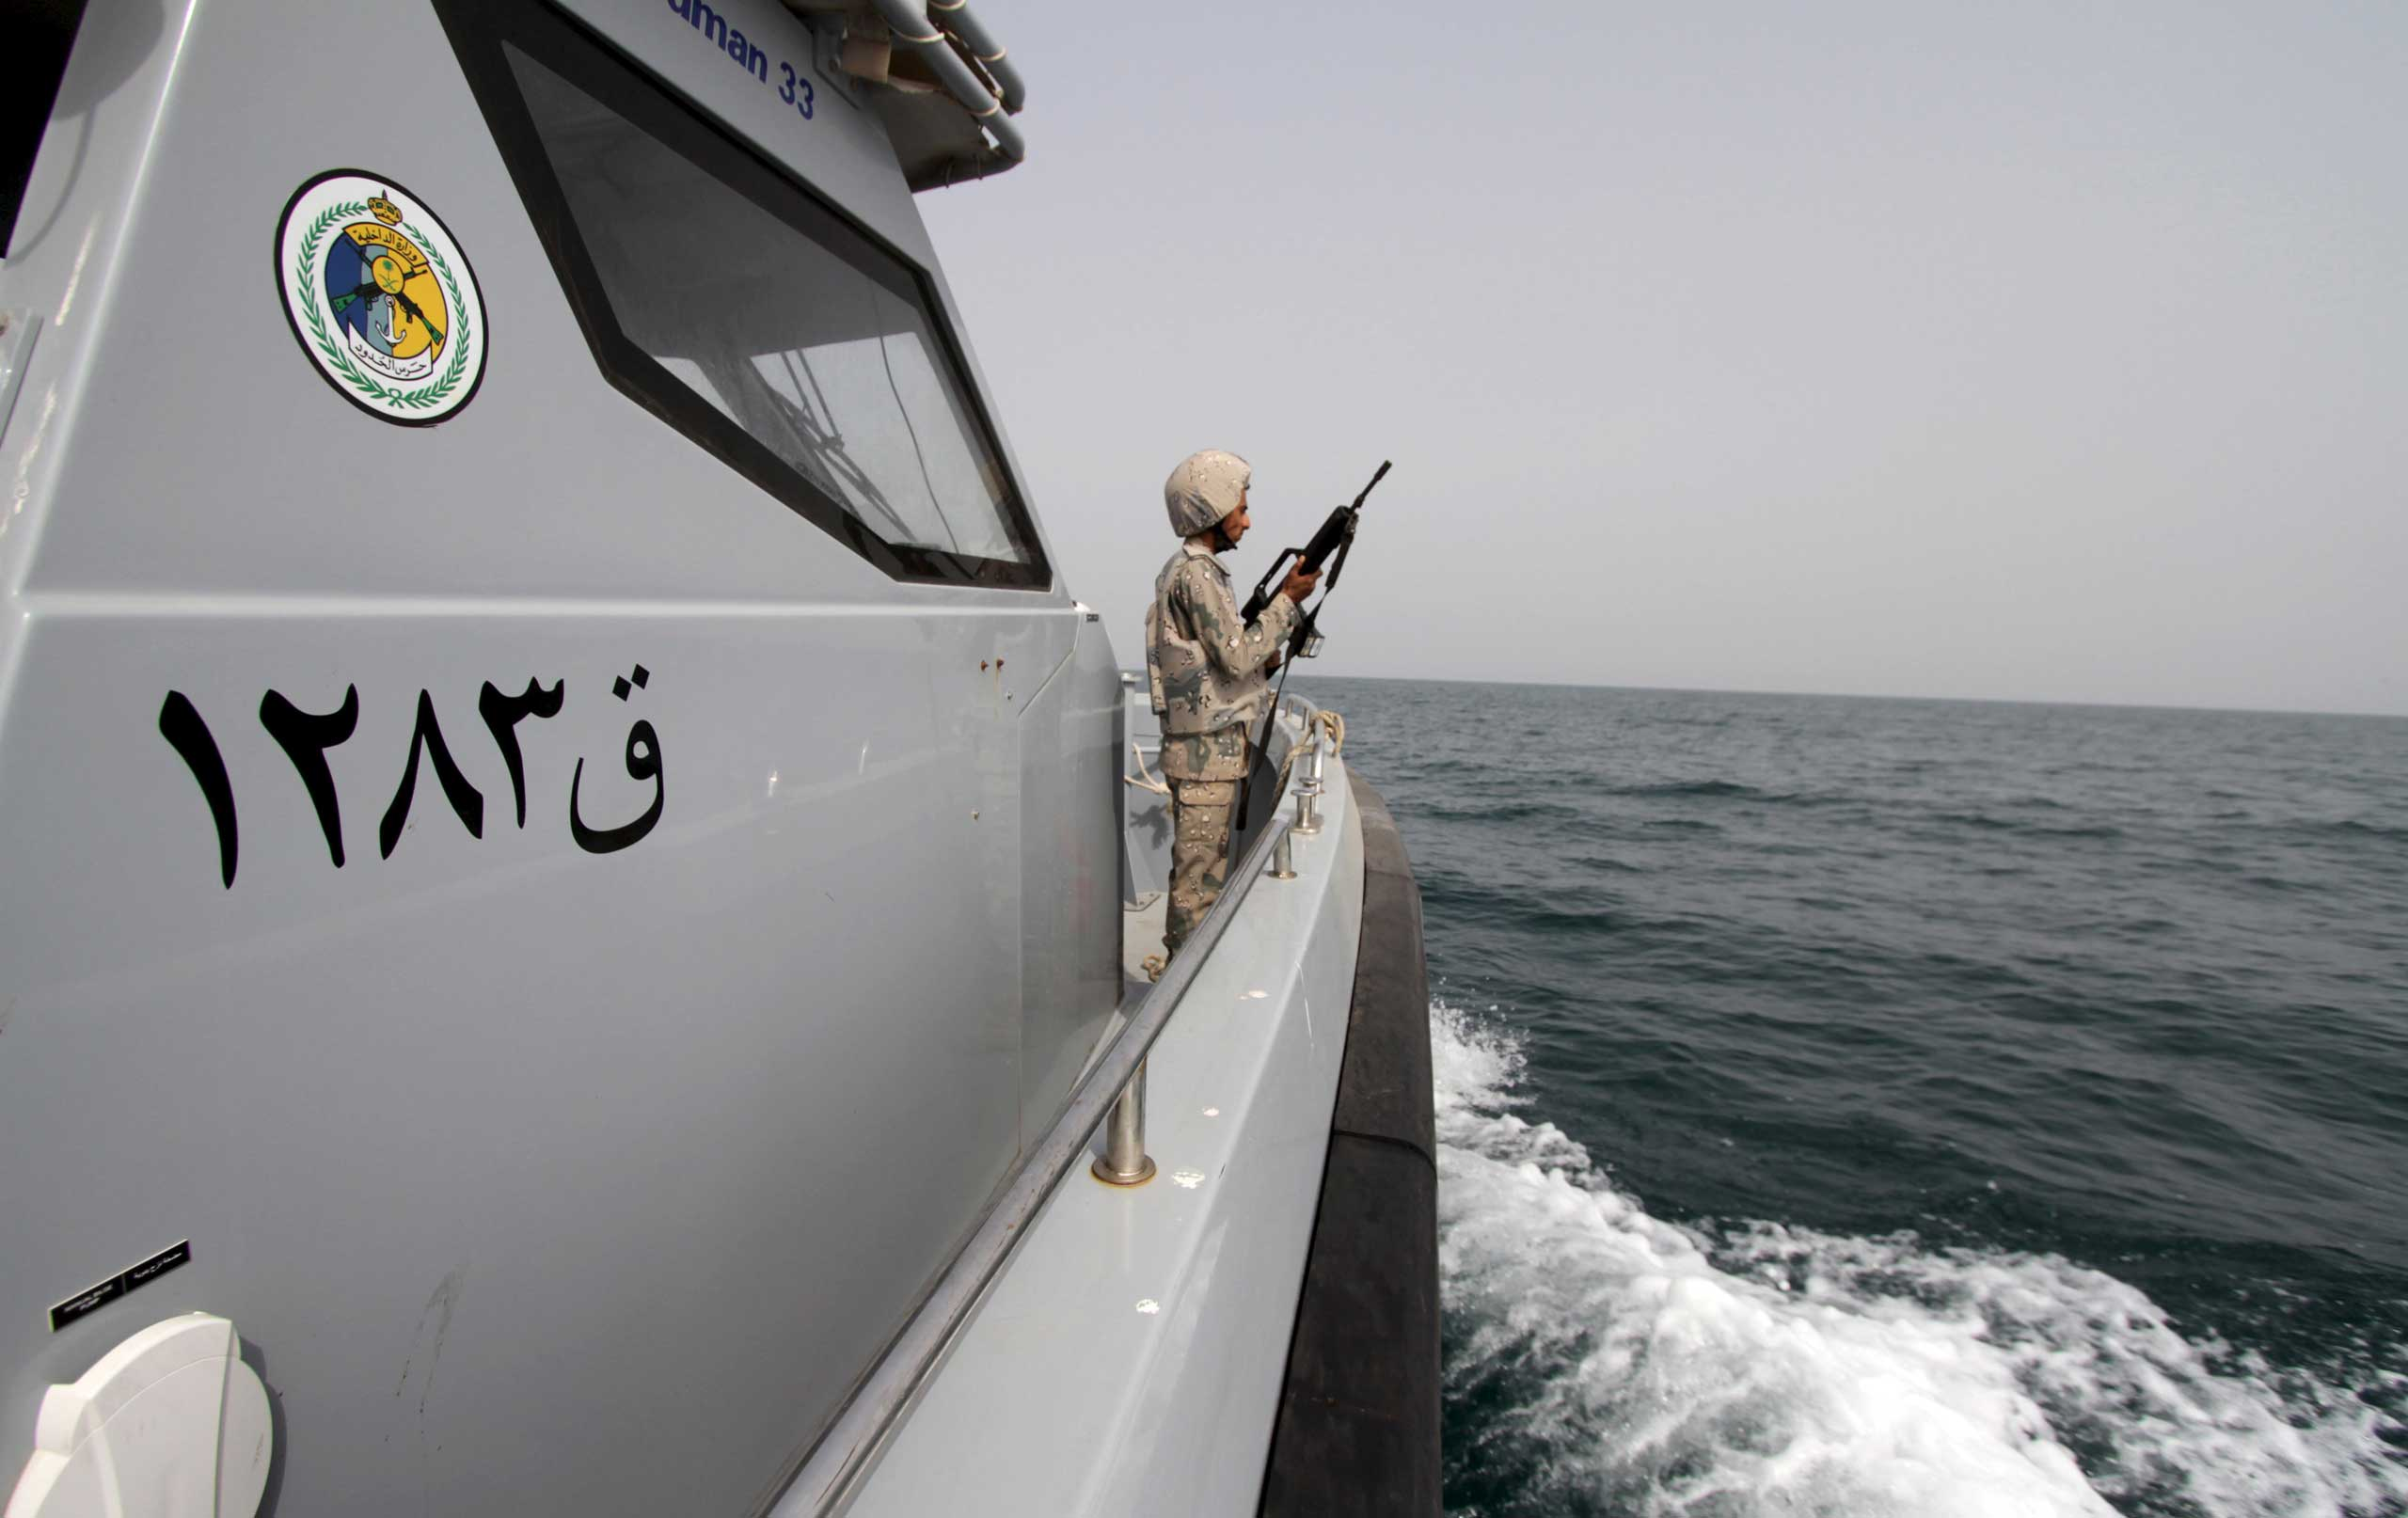 A Saudi border guard watches as he stands in a boat off the coast of the Red Sea on Saudi Arabia's maritime border with Yemen, near Jizan April 8, 2015.